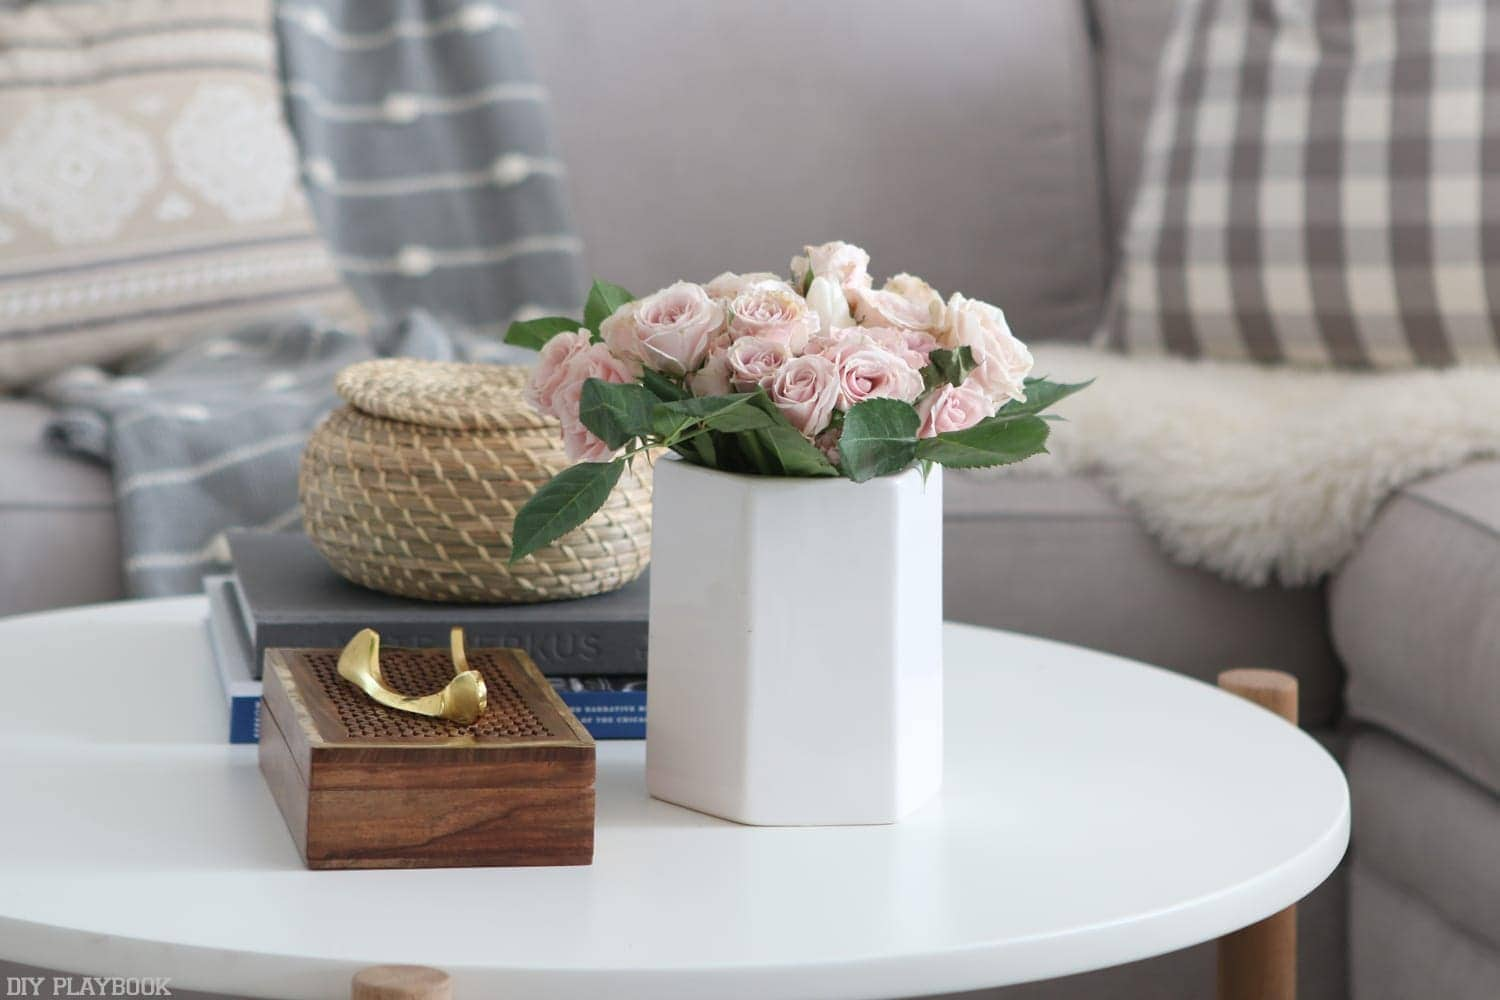 This table was perfect for these simple accent pieces